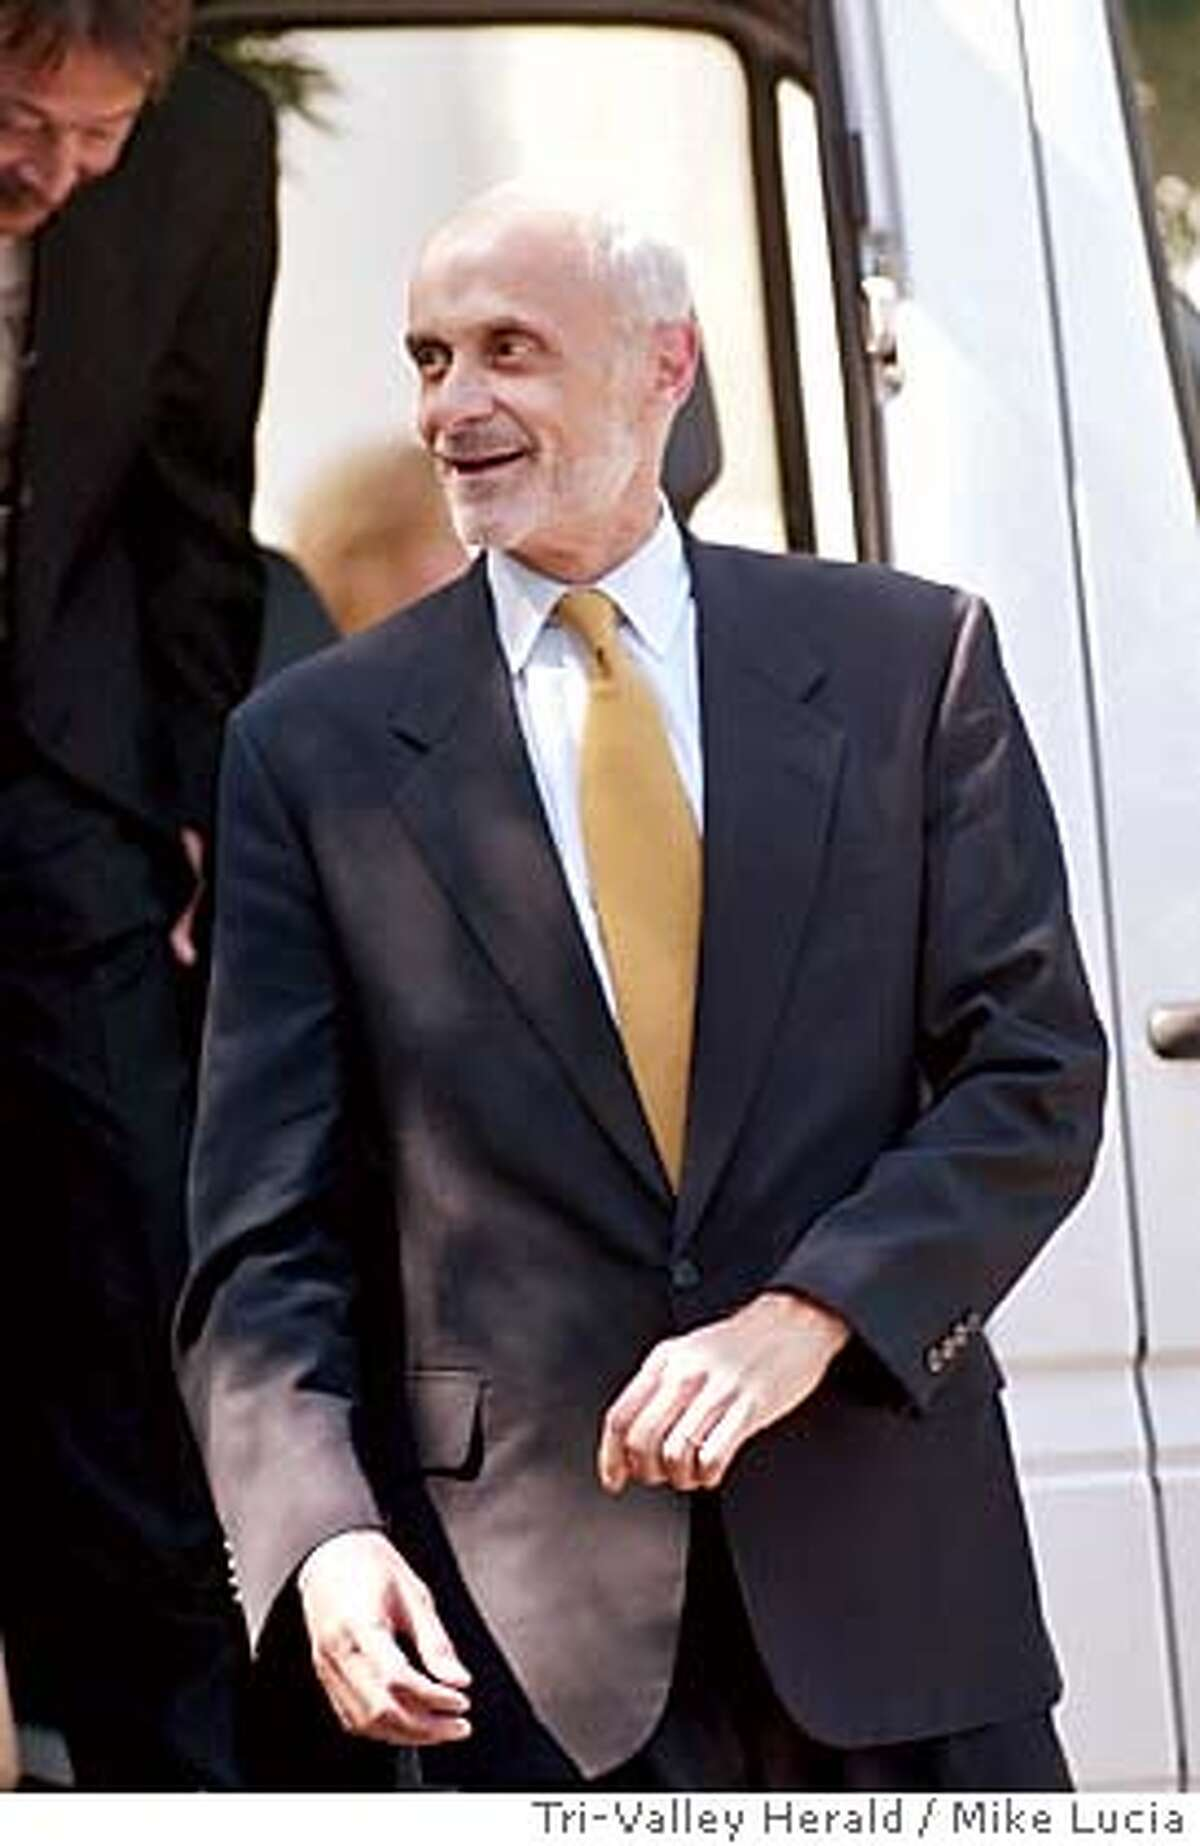 Department of Homeland Security Secretary Michael Chertoff visits the Lawrence Livermore National Laboratory Wednesday, July 28, 2005, in Livermore, Calif. Protecting transportation against terrorism remains a priority for the government, though the money spent reinforcing a transit system must be weighed against the consequences of an attack, Chertoff said. (AP Photo/Tri-Valley Herald, Mike Lucia)